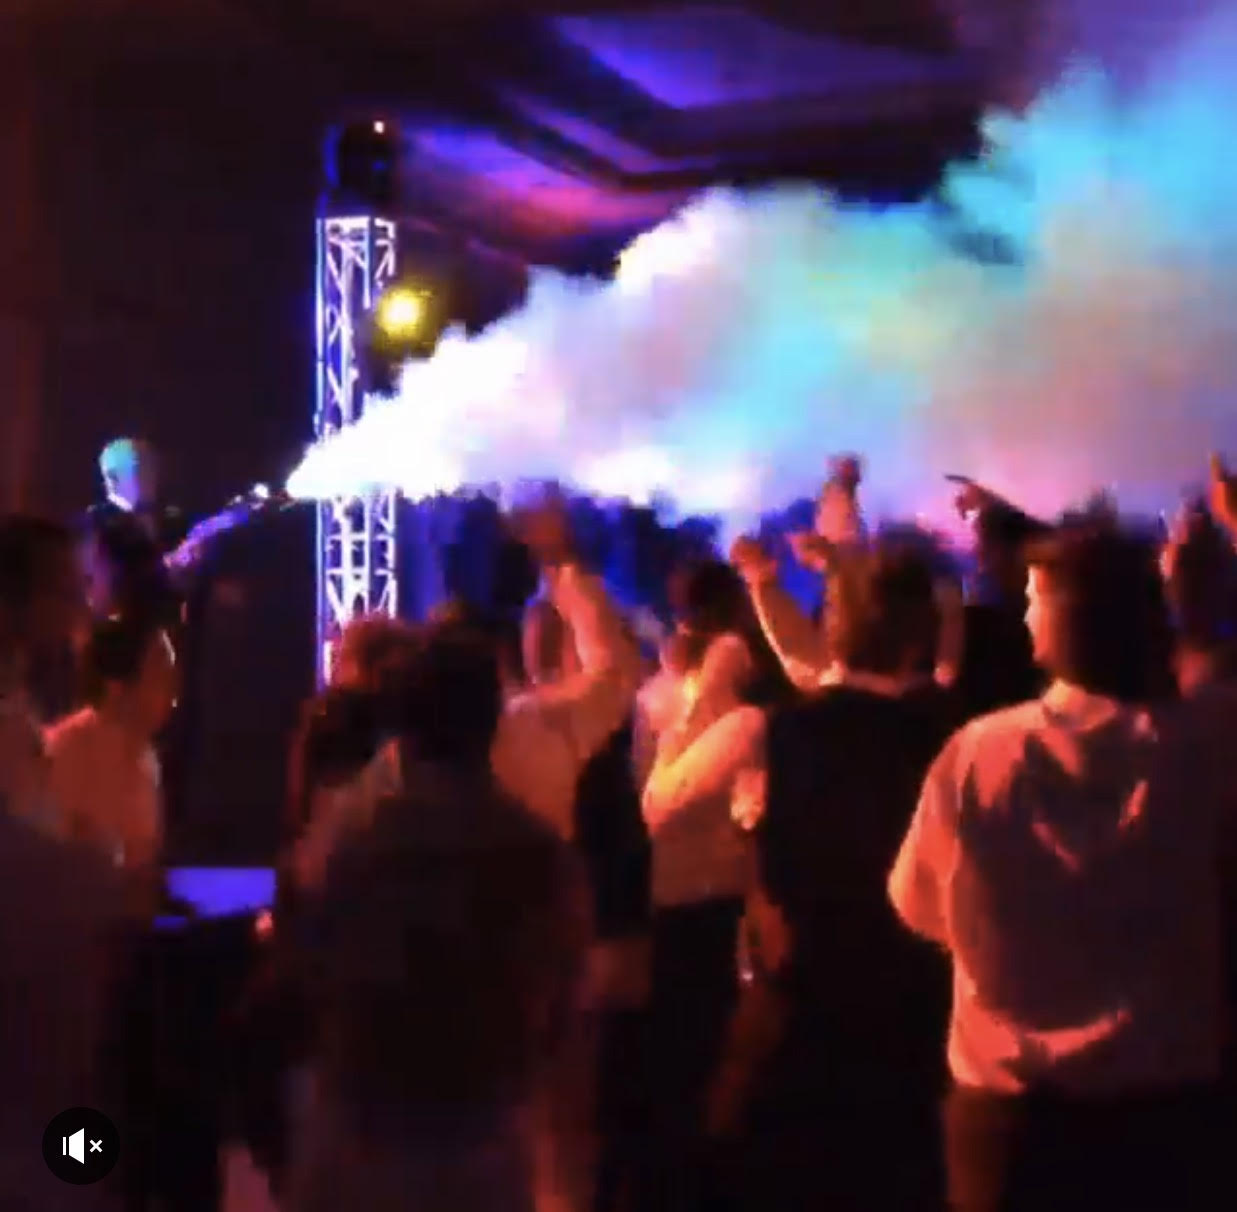 CO2 Blaster $295 - Cool down the crowd with this awesome atmospheric effect!